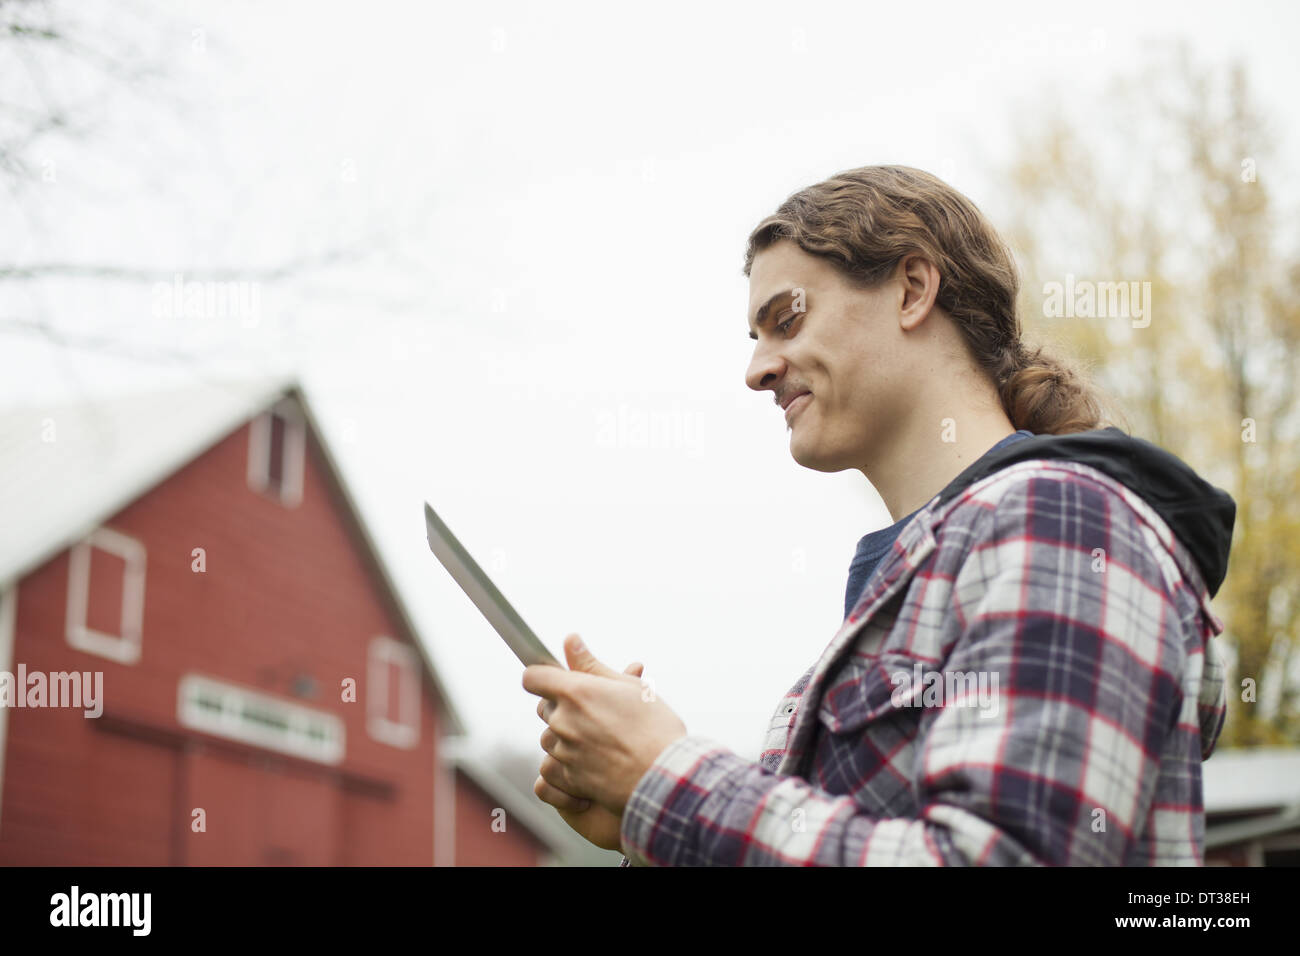 A young man using a computer tablet, a portable PC tablet device, on an organic farm. - Stock Image